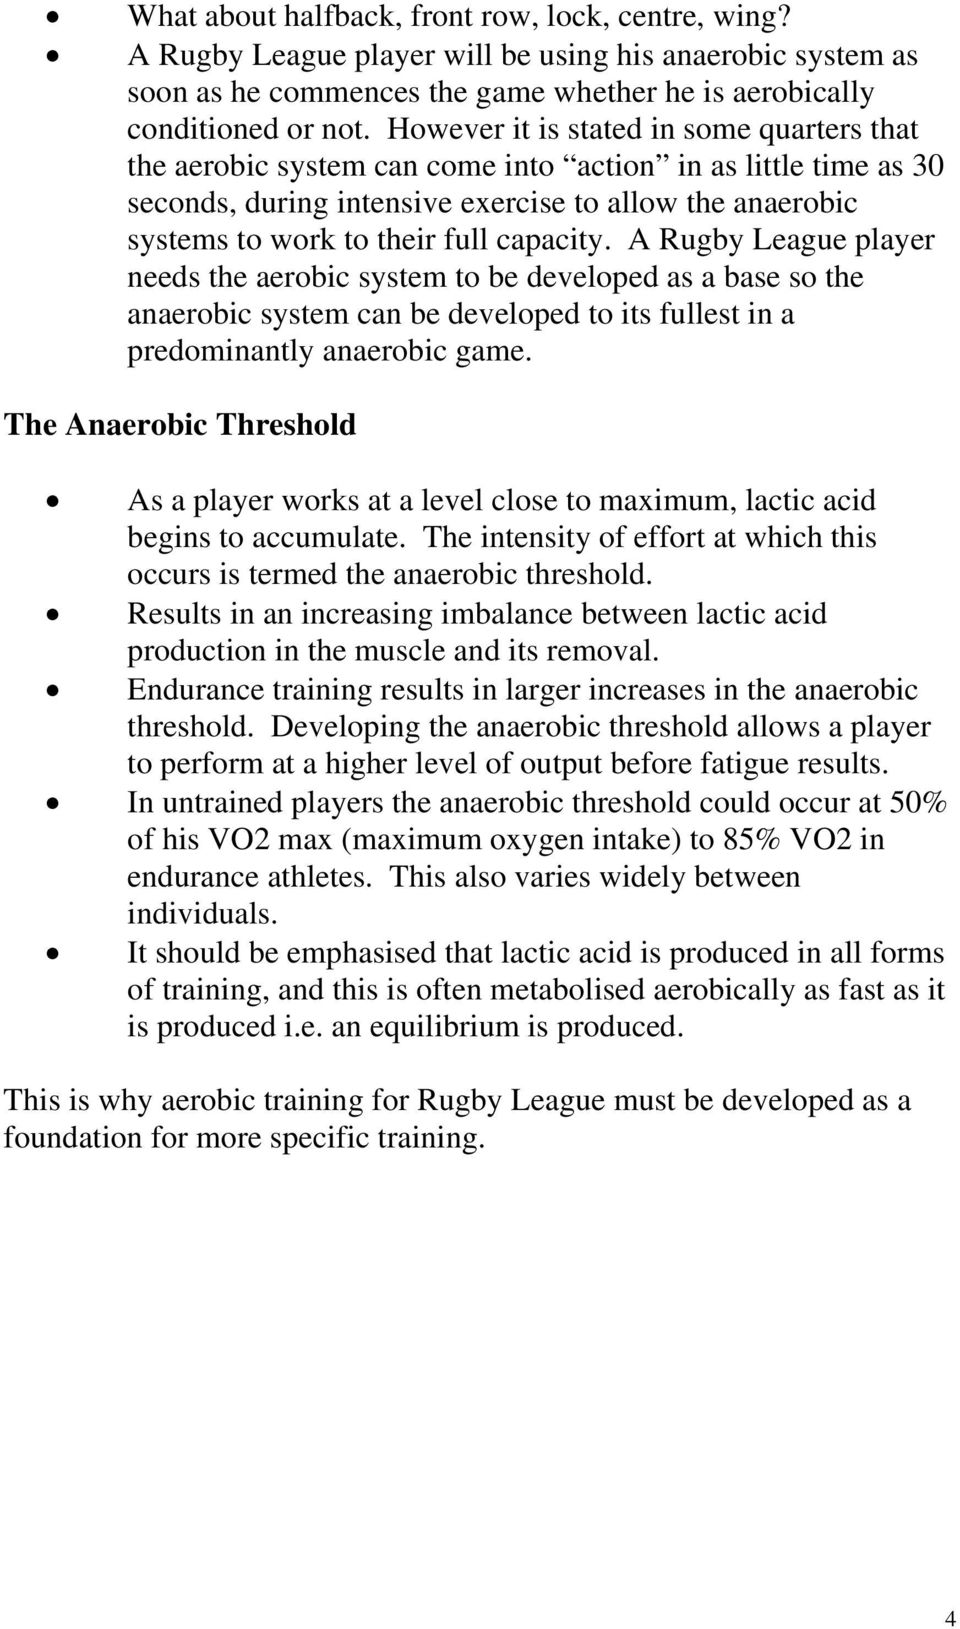 capacity. A Rugby League player needs the aerobic system to be developed as a base so the anaerobic system can be developed to its fullest in a predominantly anaerobic game.